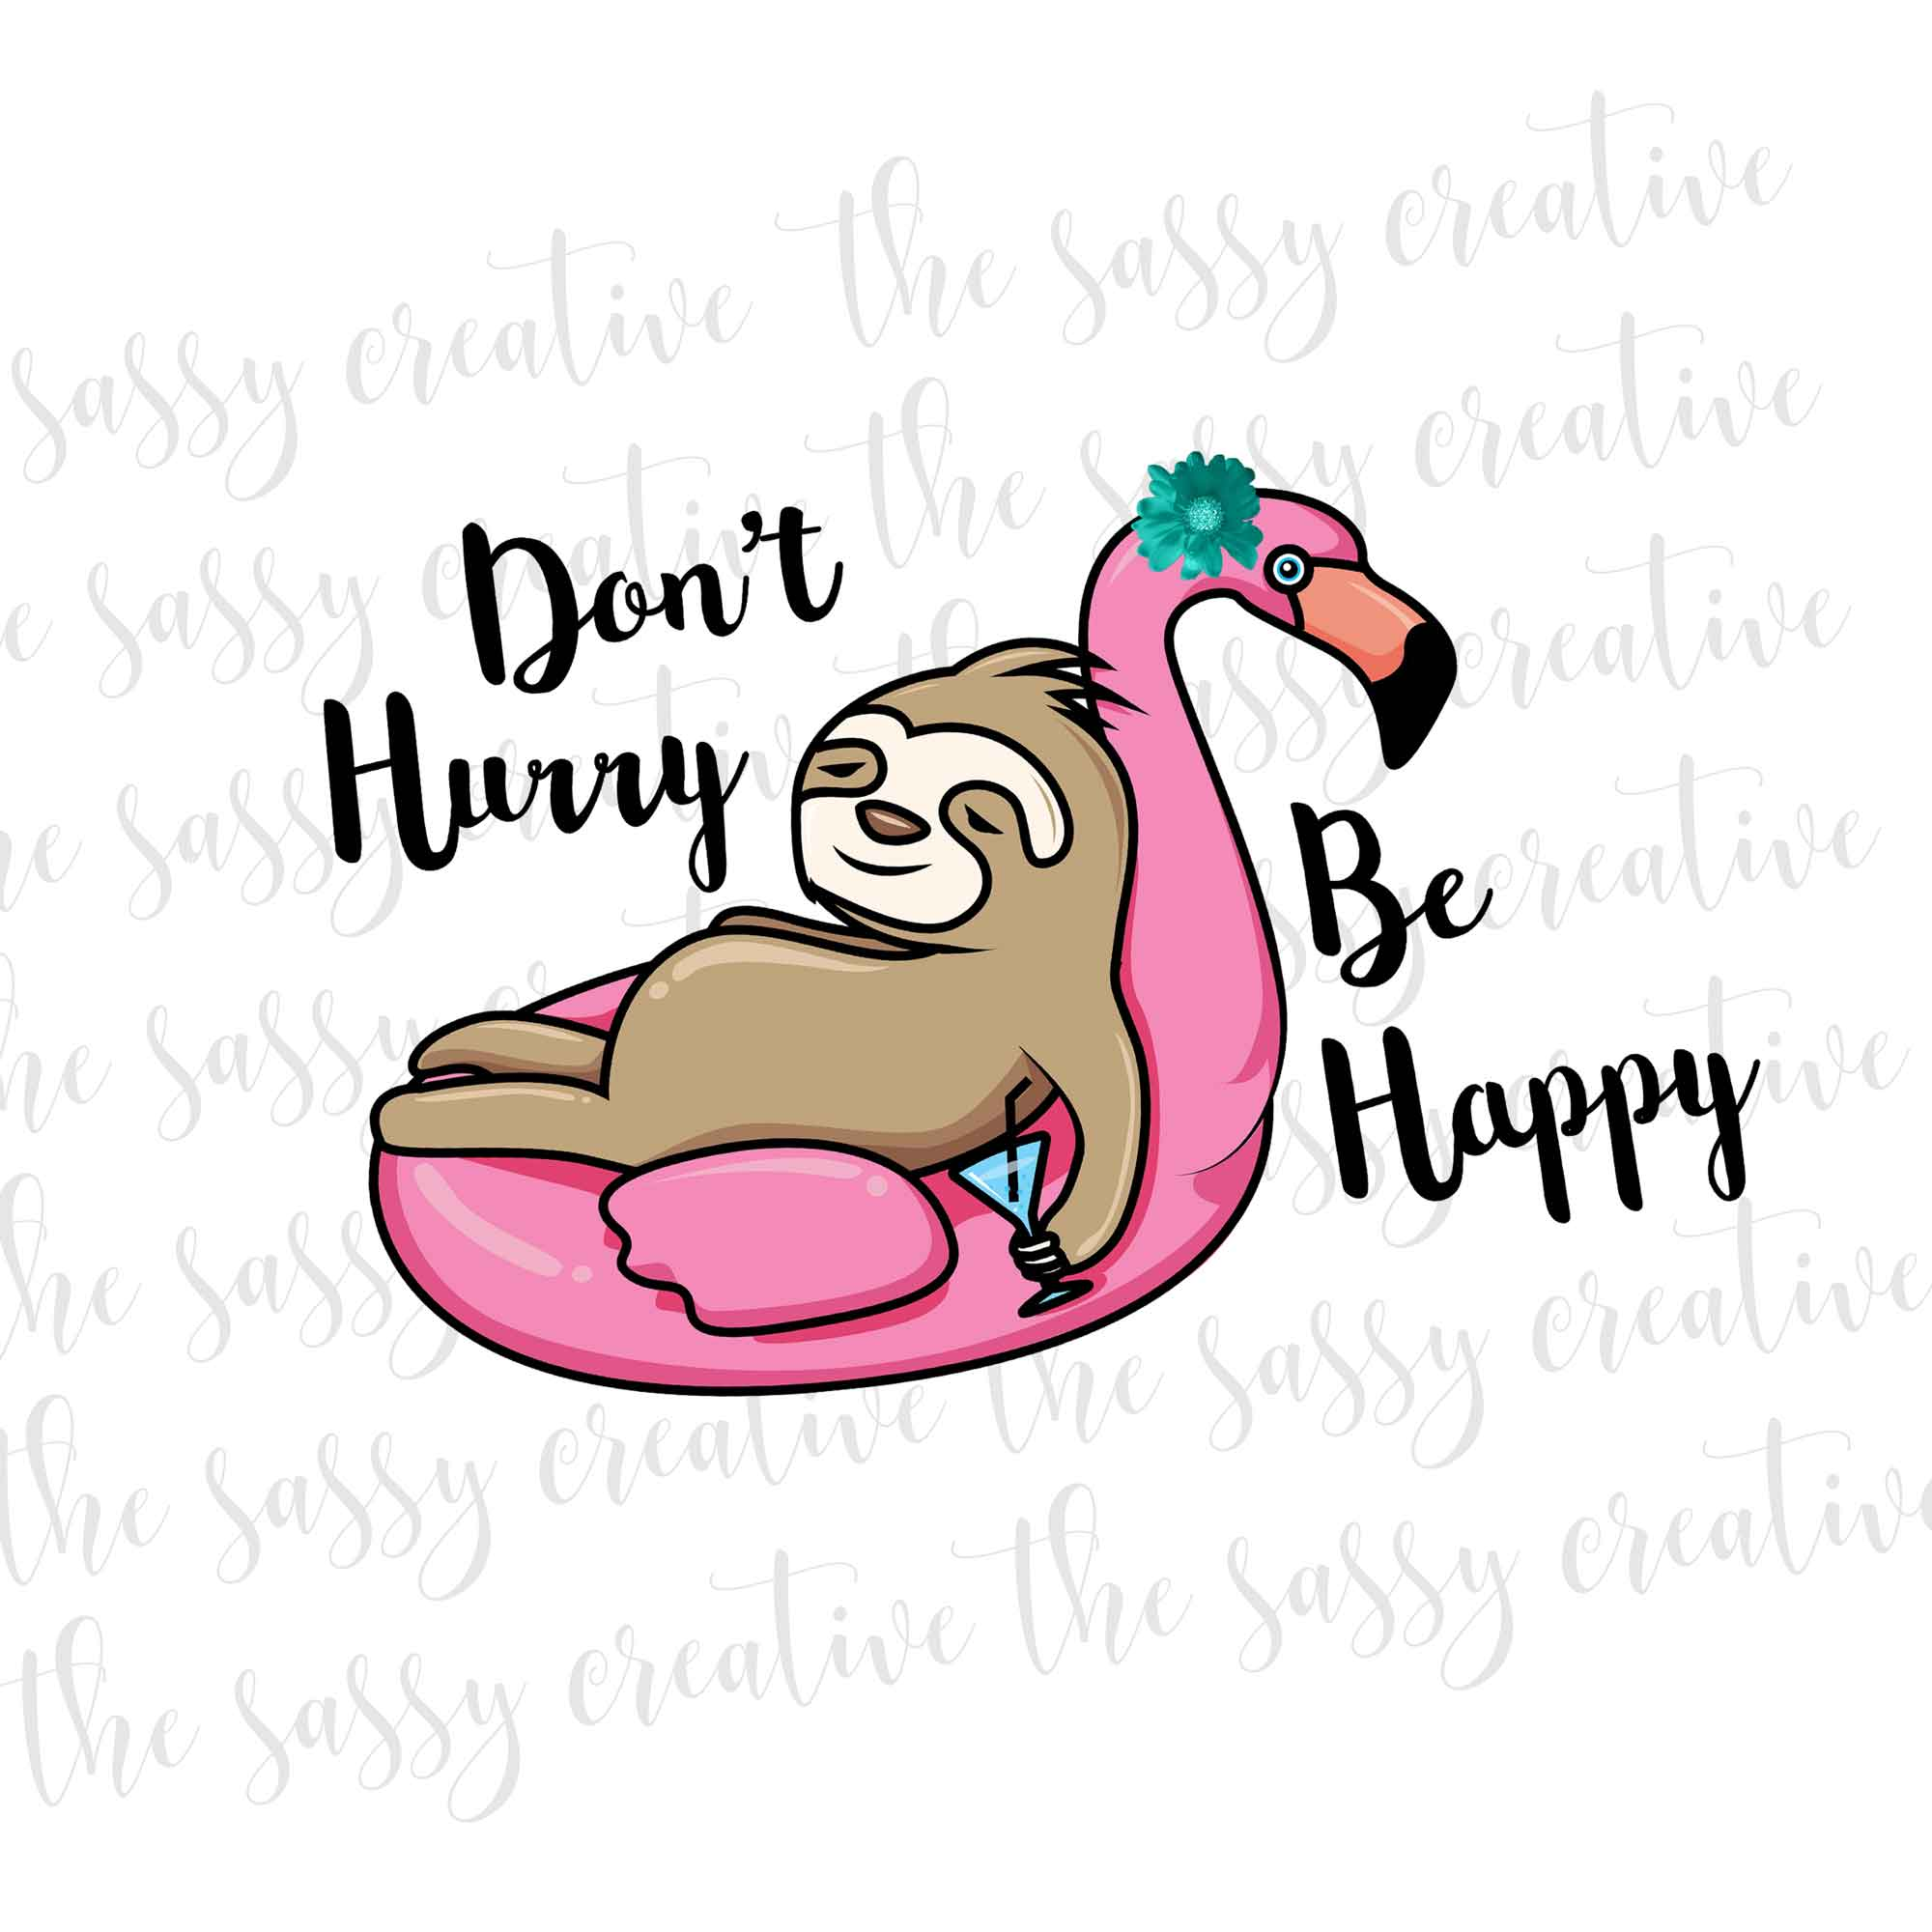 donthurrybehappycover